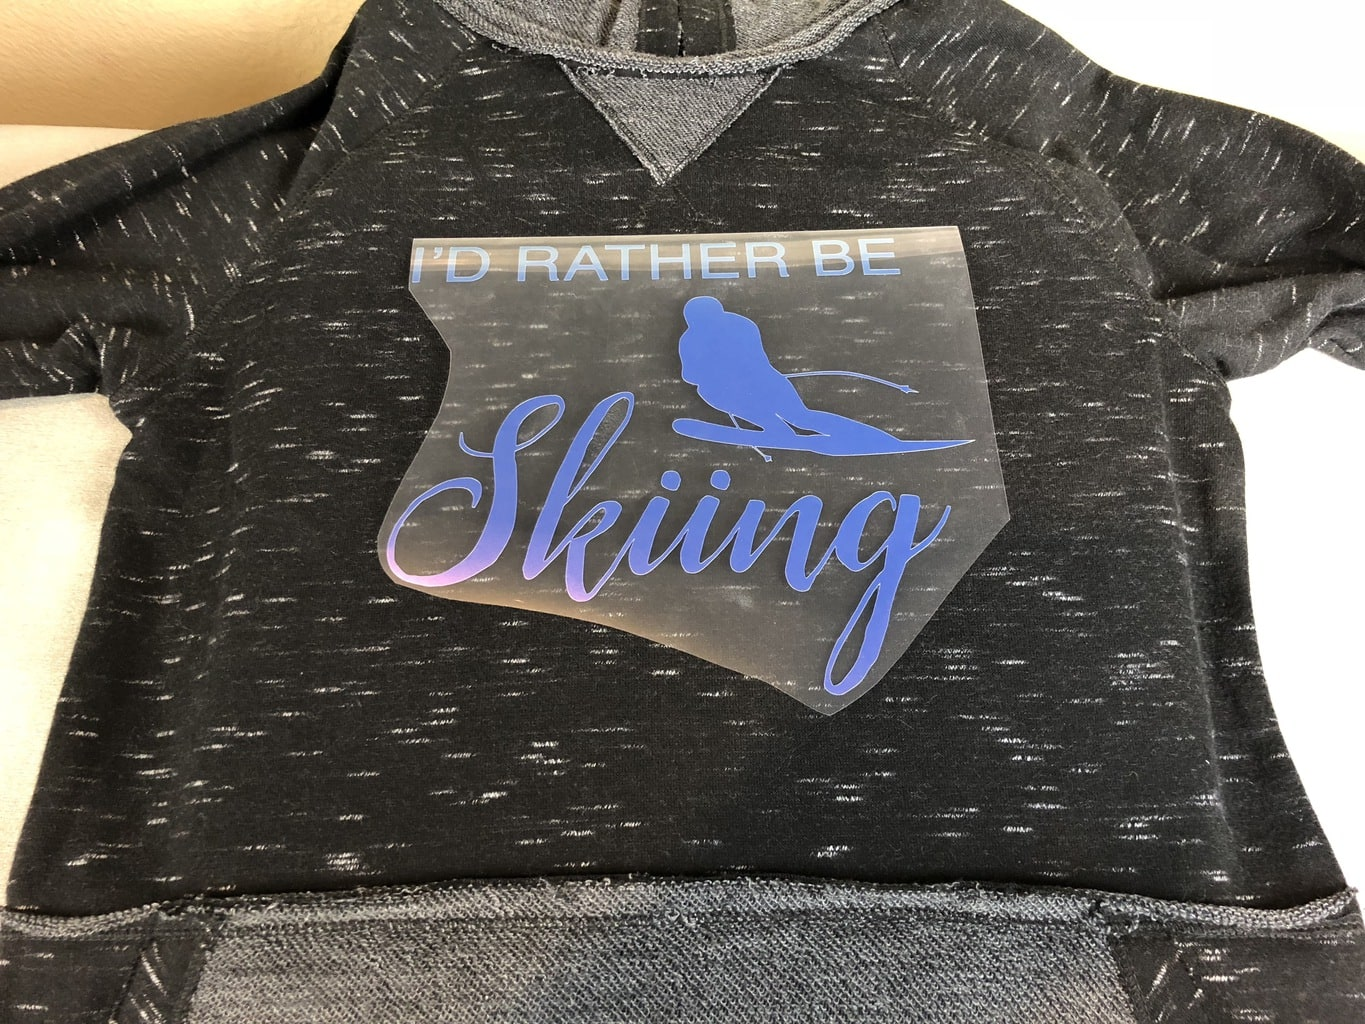 DIY I'd Rather Be Skiing Shirt in process